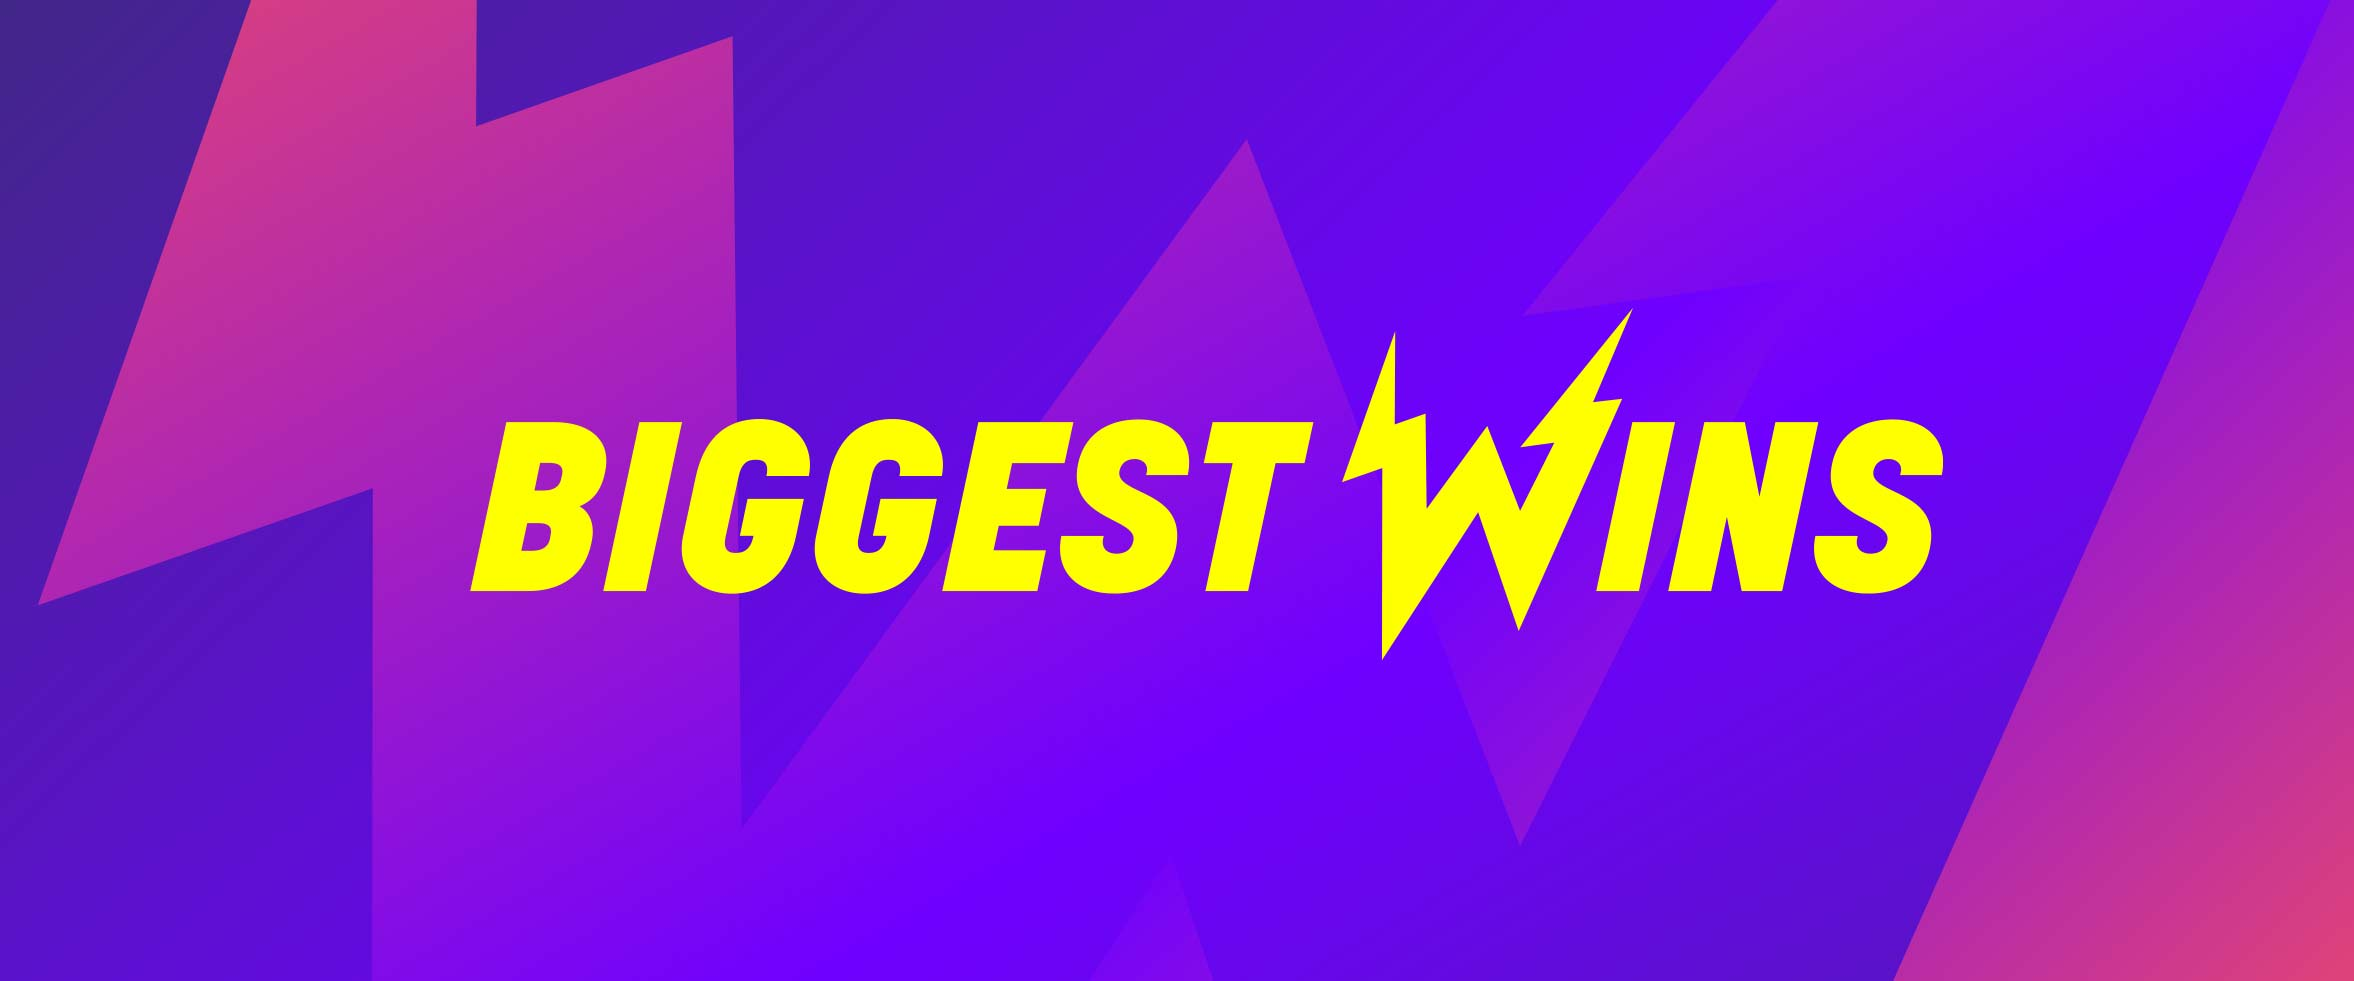 July's Biggest Wins at Wildz